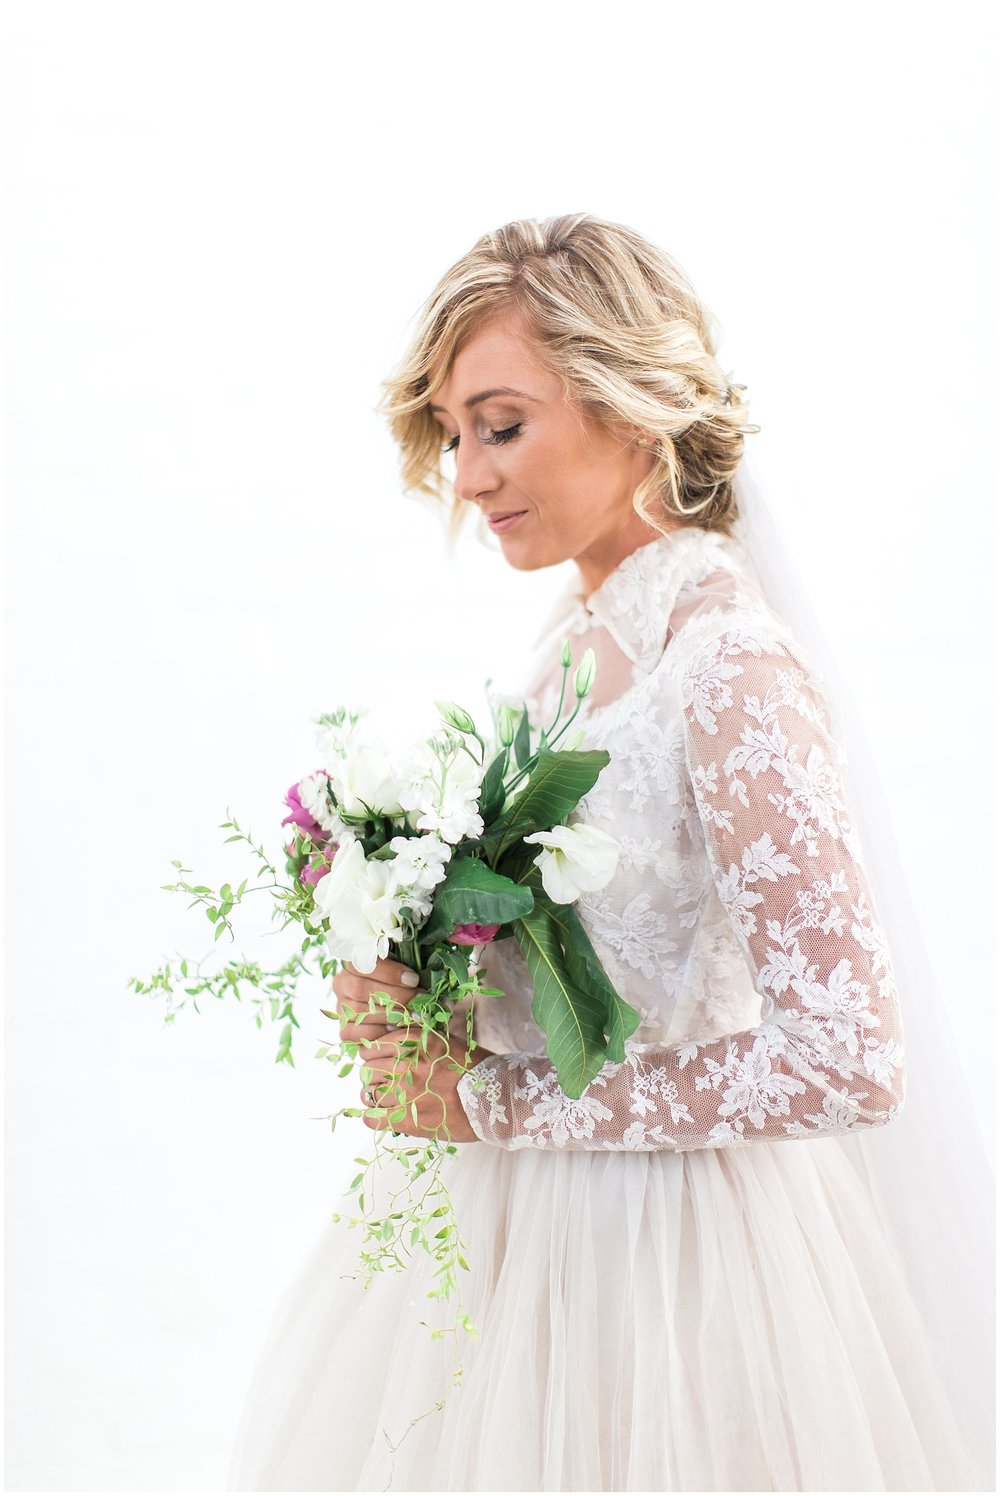 AliciaLandman_JoleneandZander_Wedding_The Pretty Blog_0424.jpg